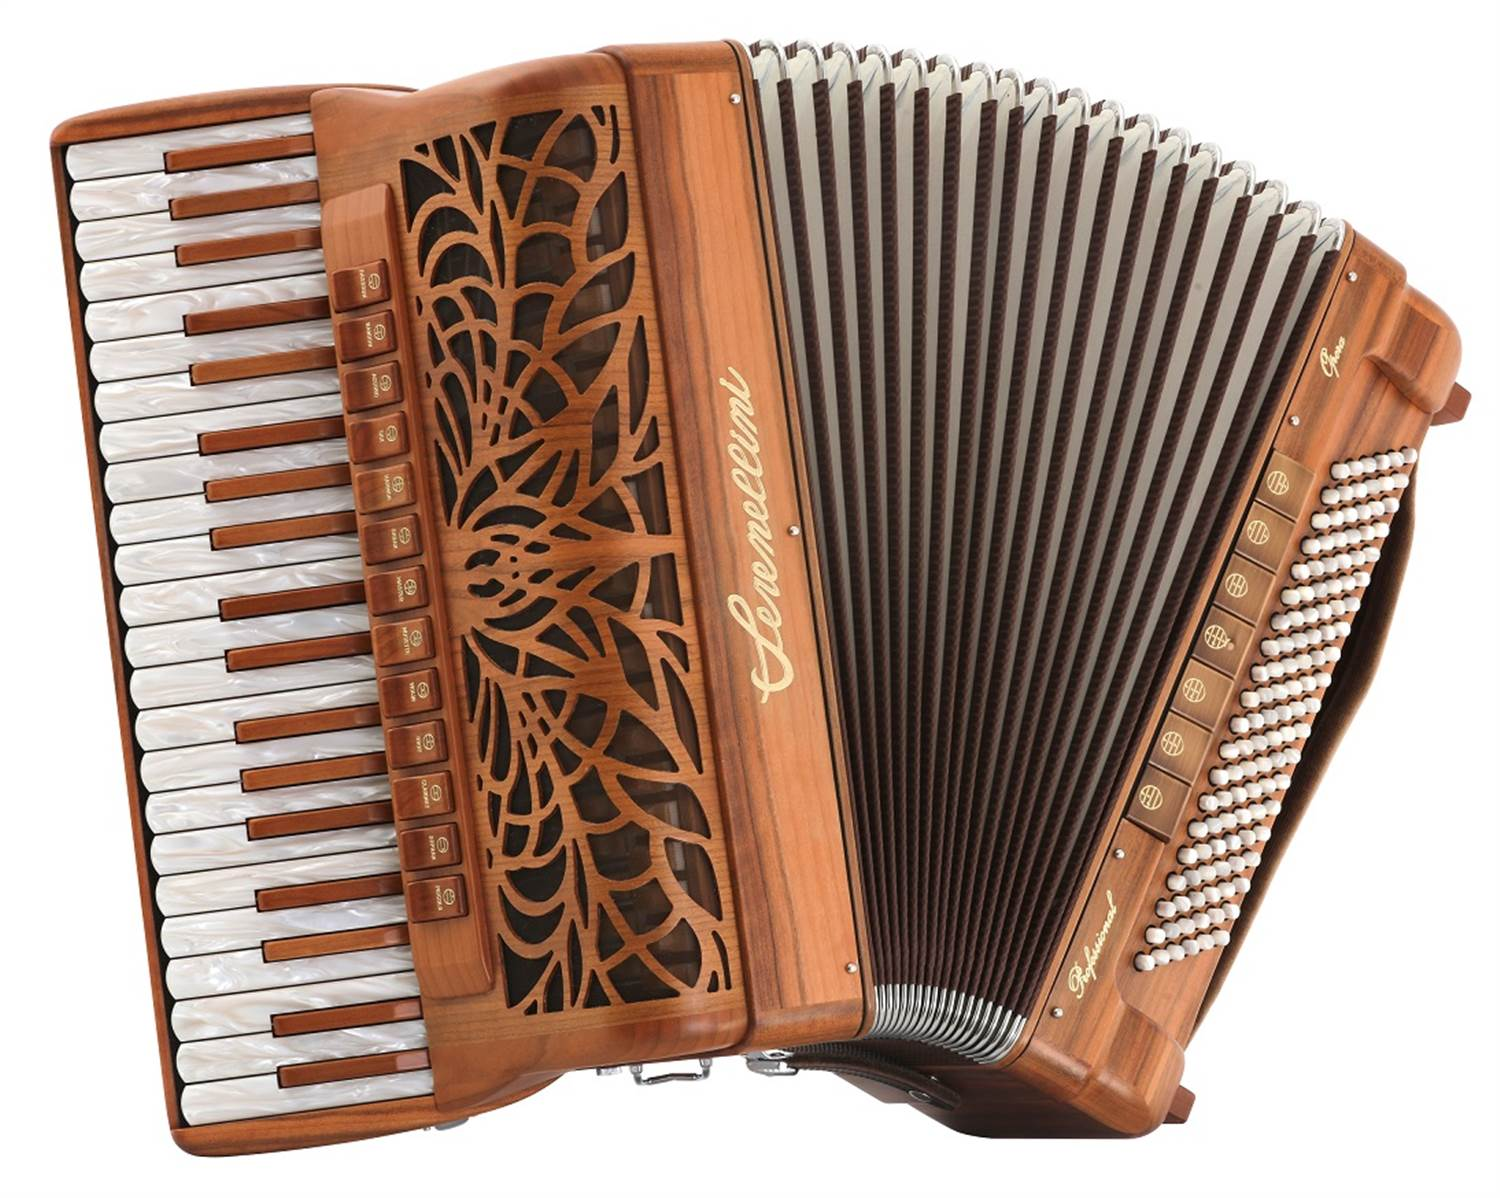 Serenellini Cassotto Opera 41 2+2 piano accordion